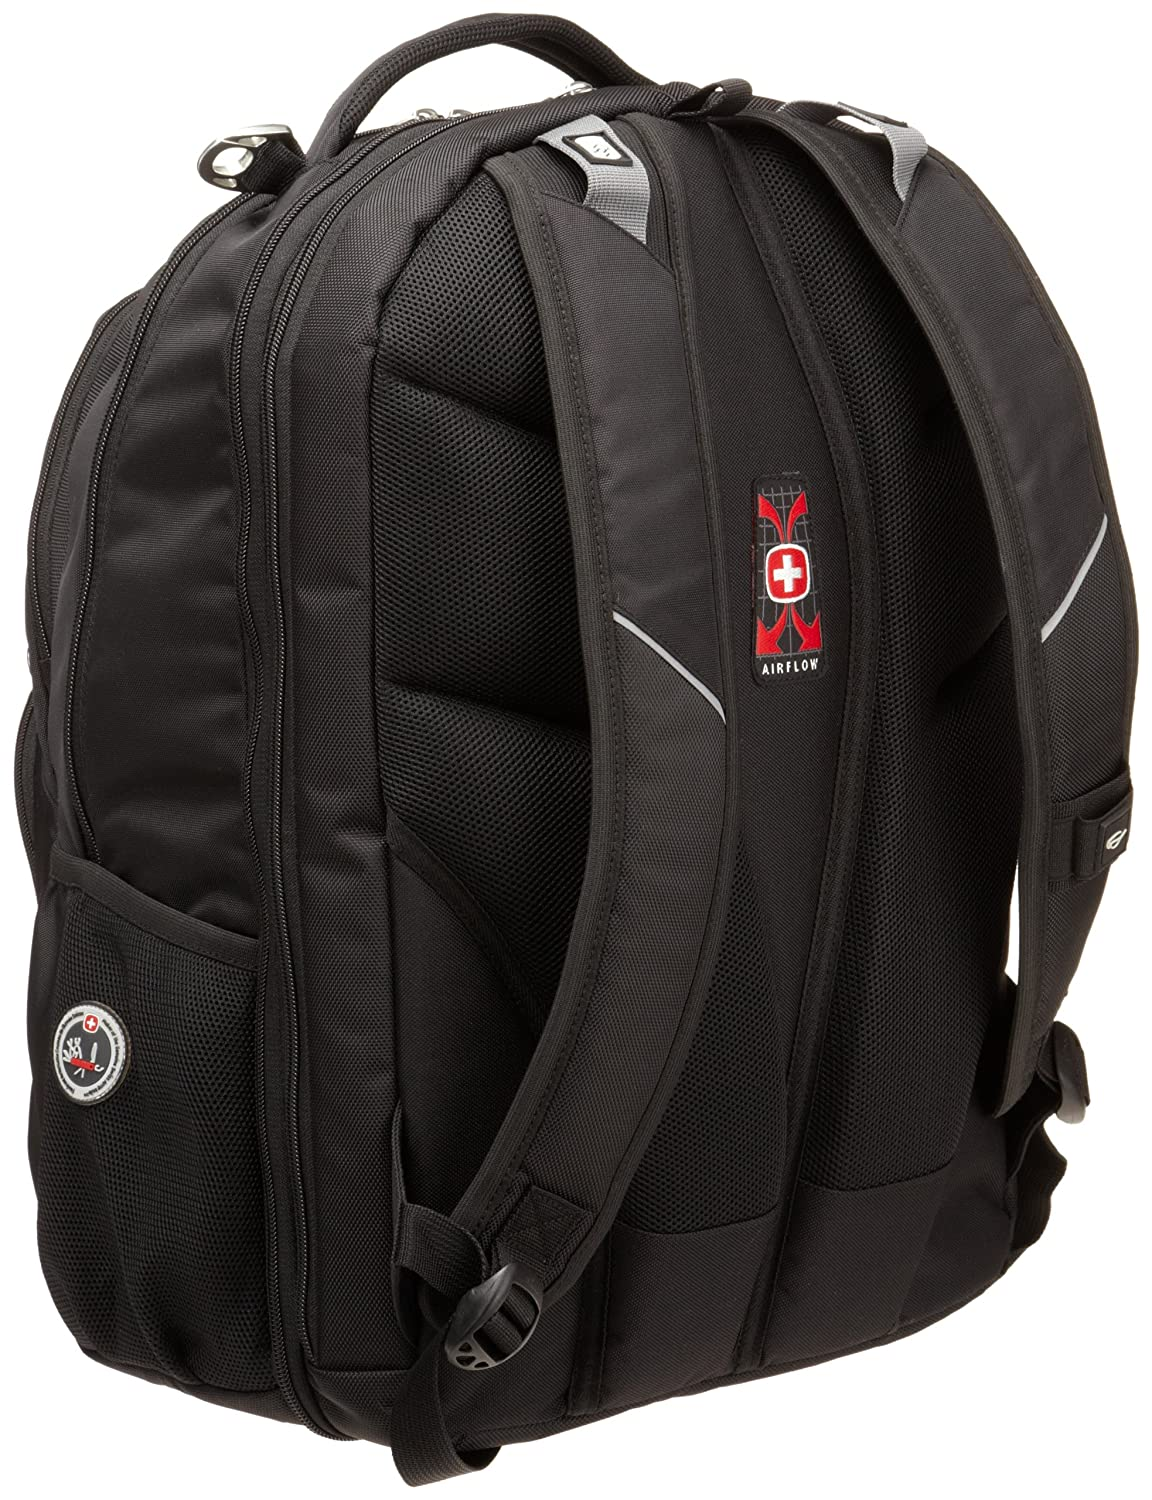 c8c045d6837f Swiss Gear SA1908 Black TSA Friendly ScanSmart Laptop Backpack - Fits Most  17 Inch Laptops and Tablets